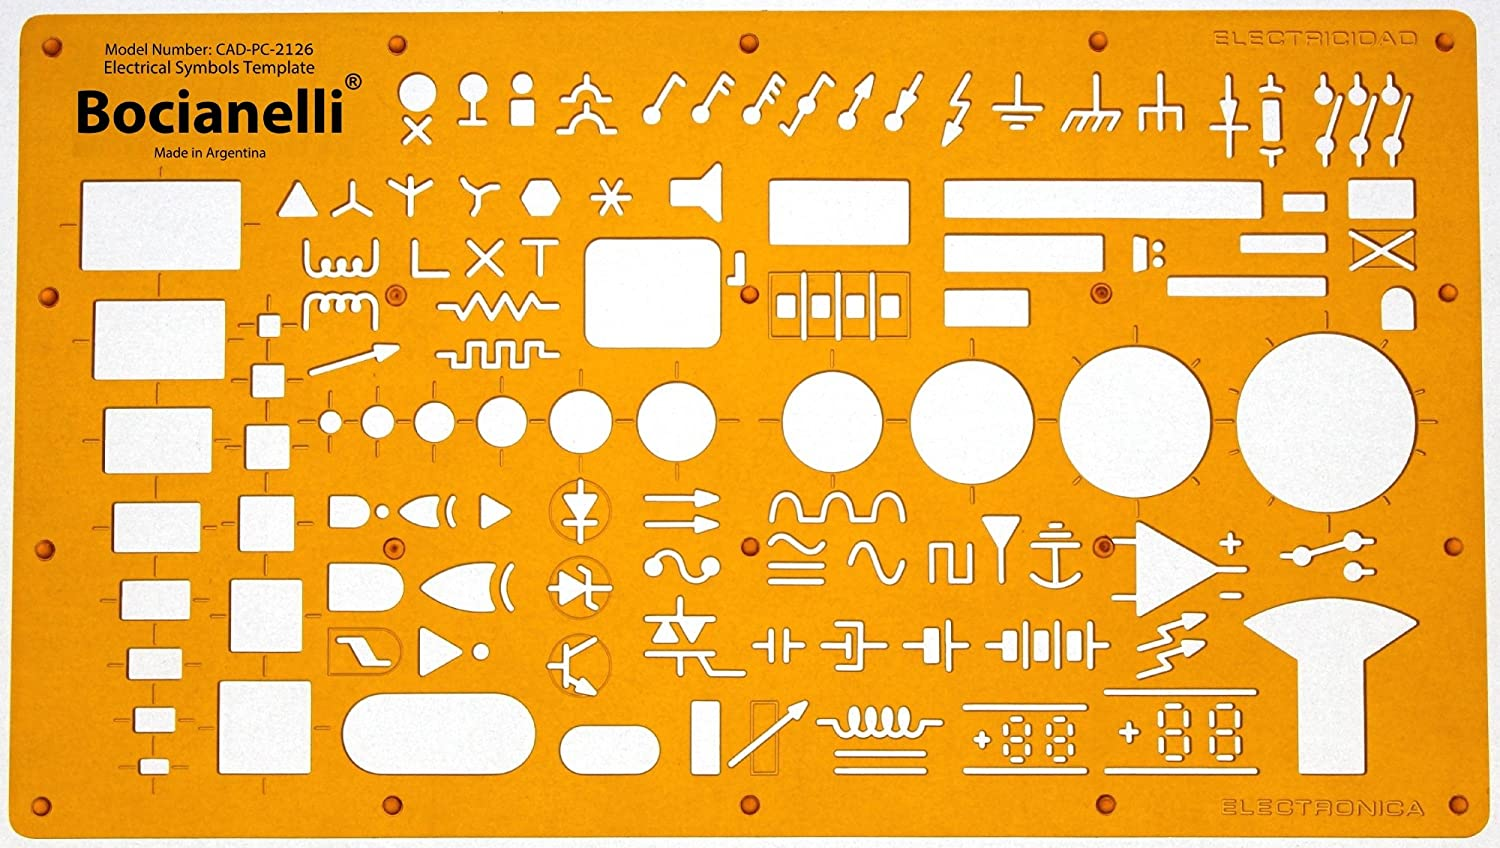 Electrical And Electronic Installation Symbols Drawing Standard Wiring Diagram Template Stencil Engineering Drafting Supplies Layout Plan Schematic